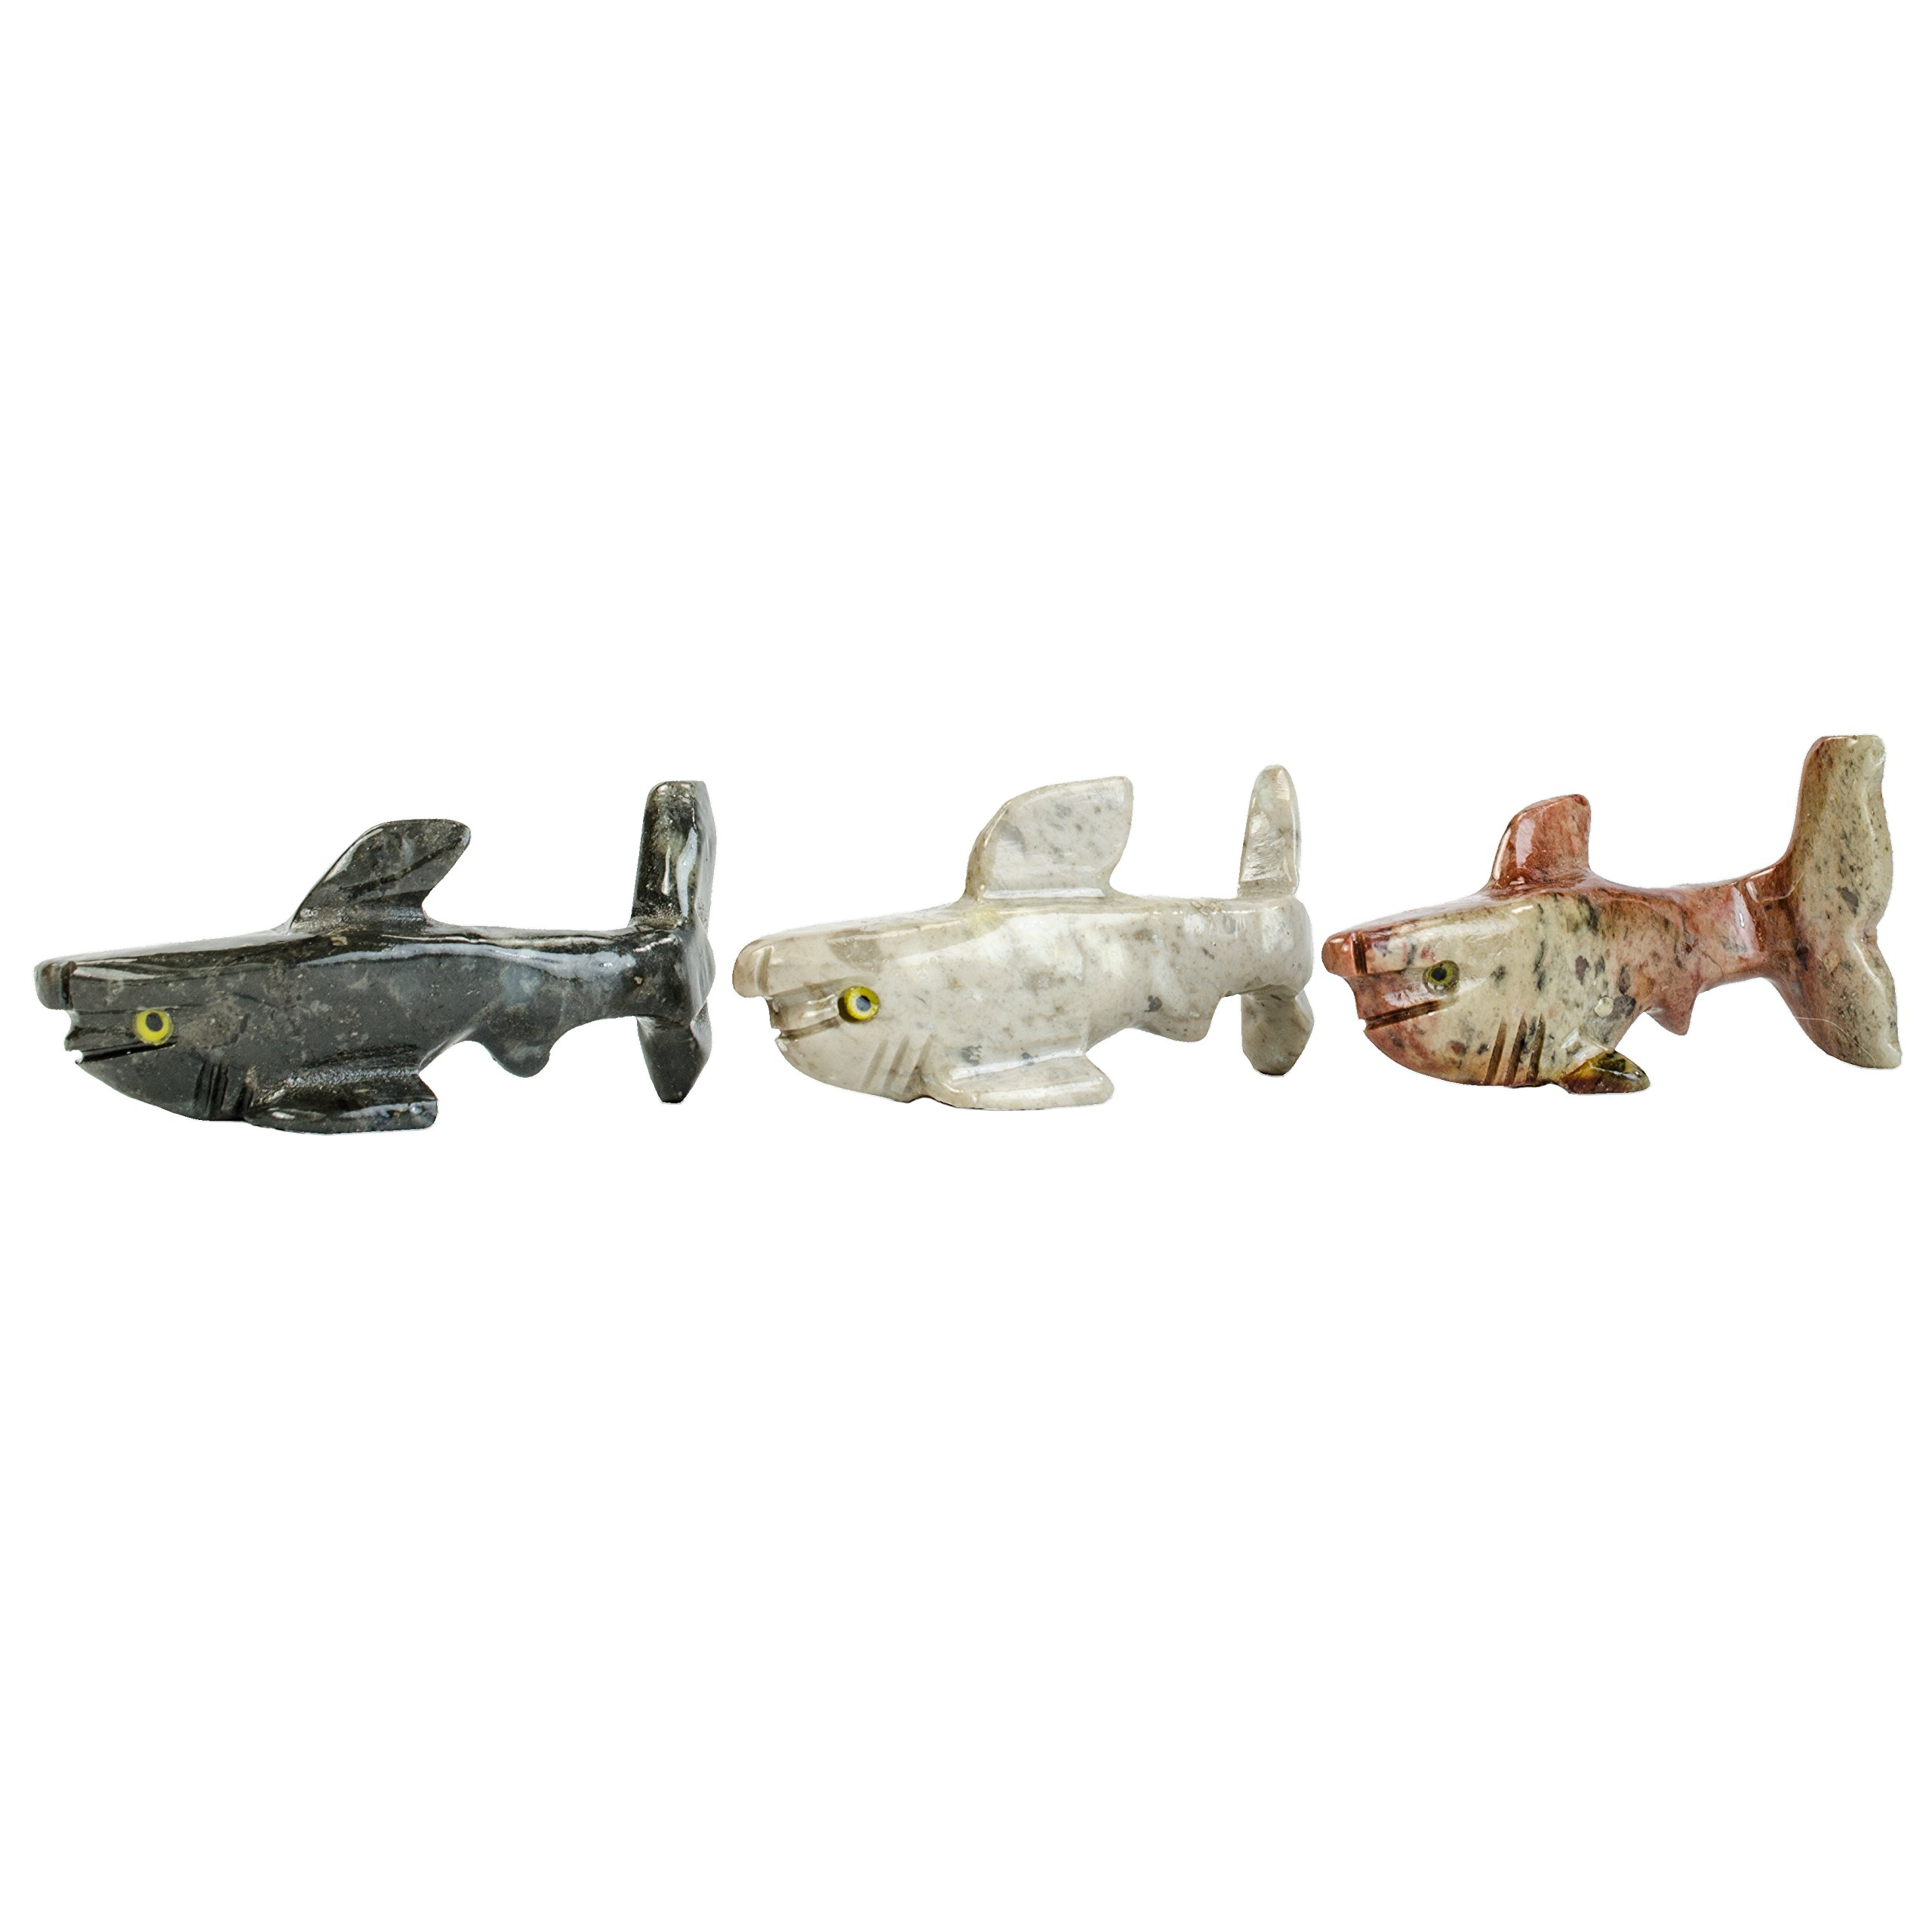 Digging Dolls : 10 pcs Artisan Hammer Head Shark Collectable Animal Figurine - Party Favors, Stocking Stuffers, Gifts, Collecting and More!